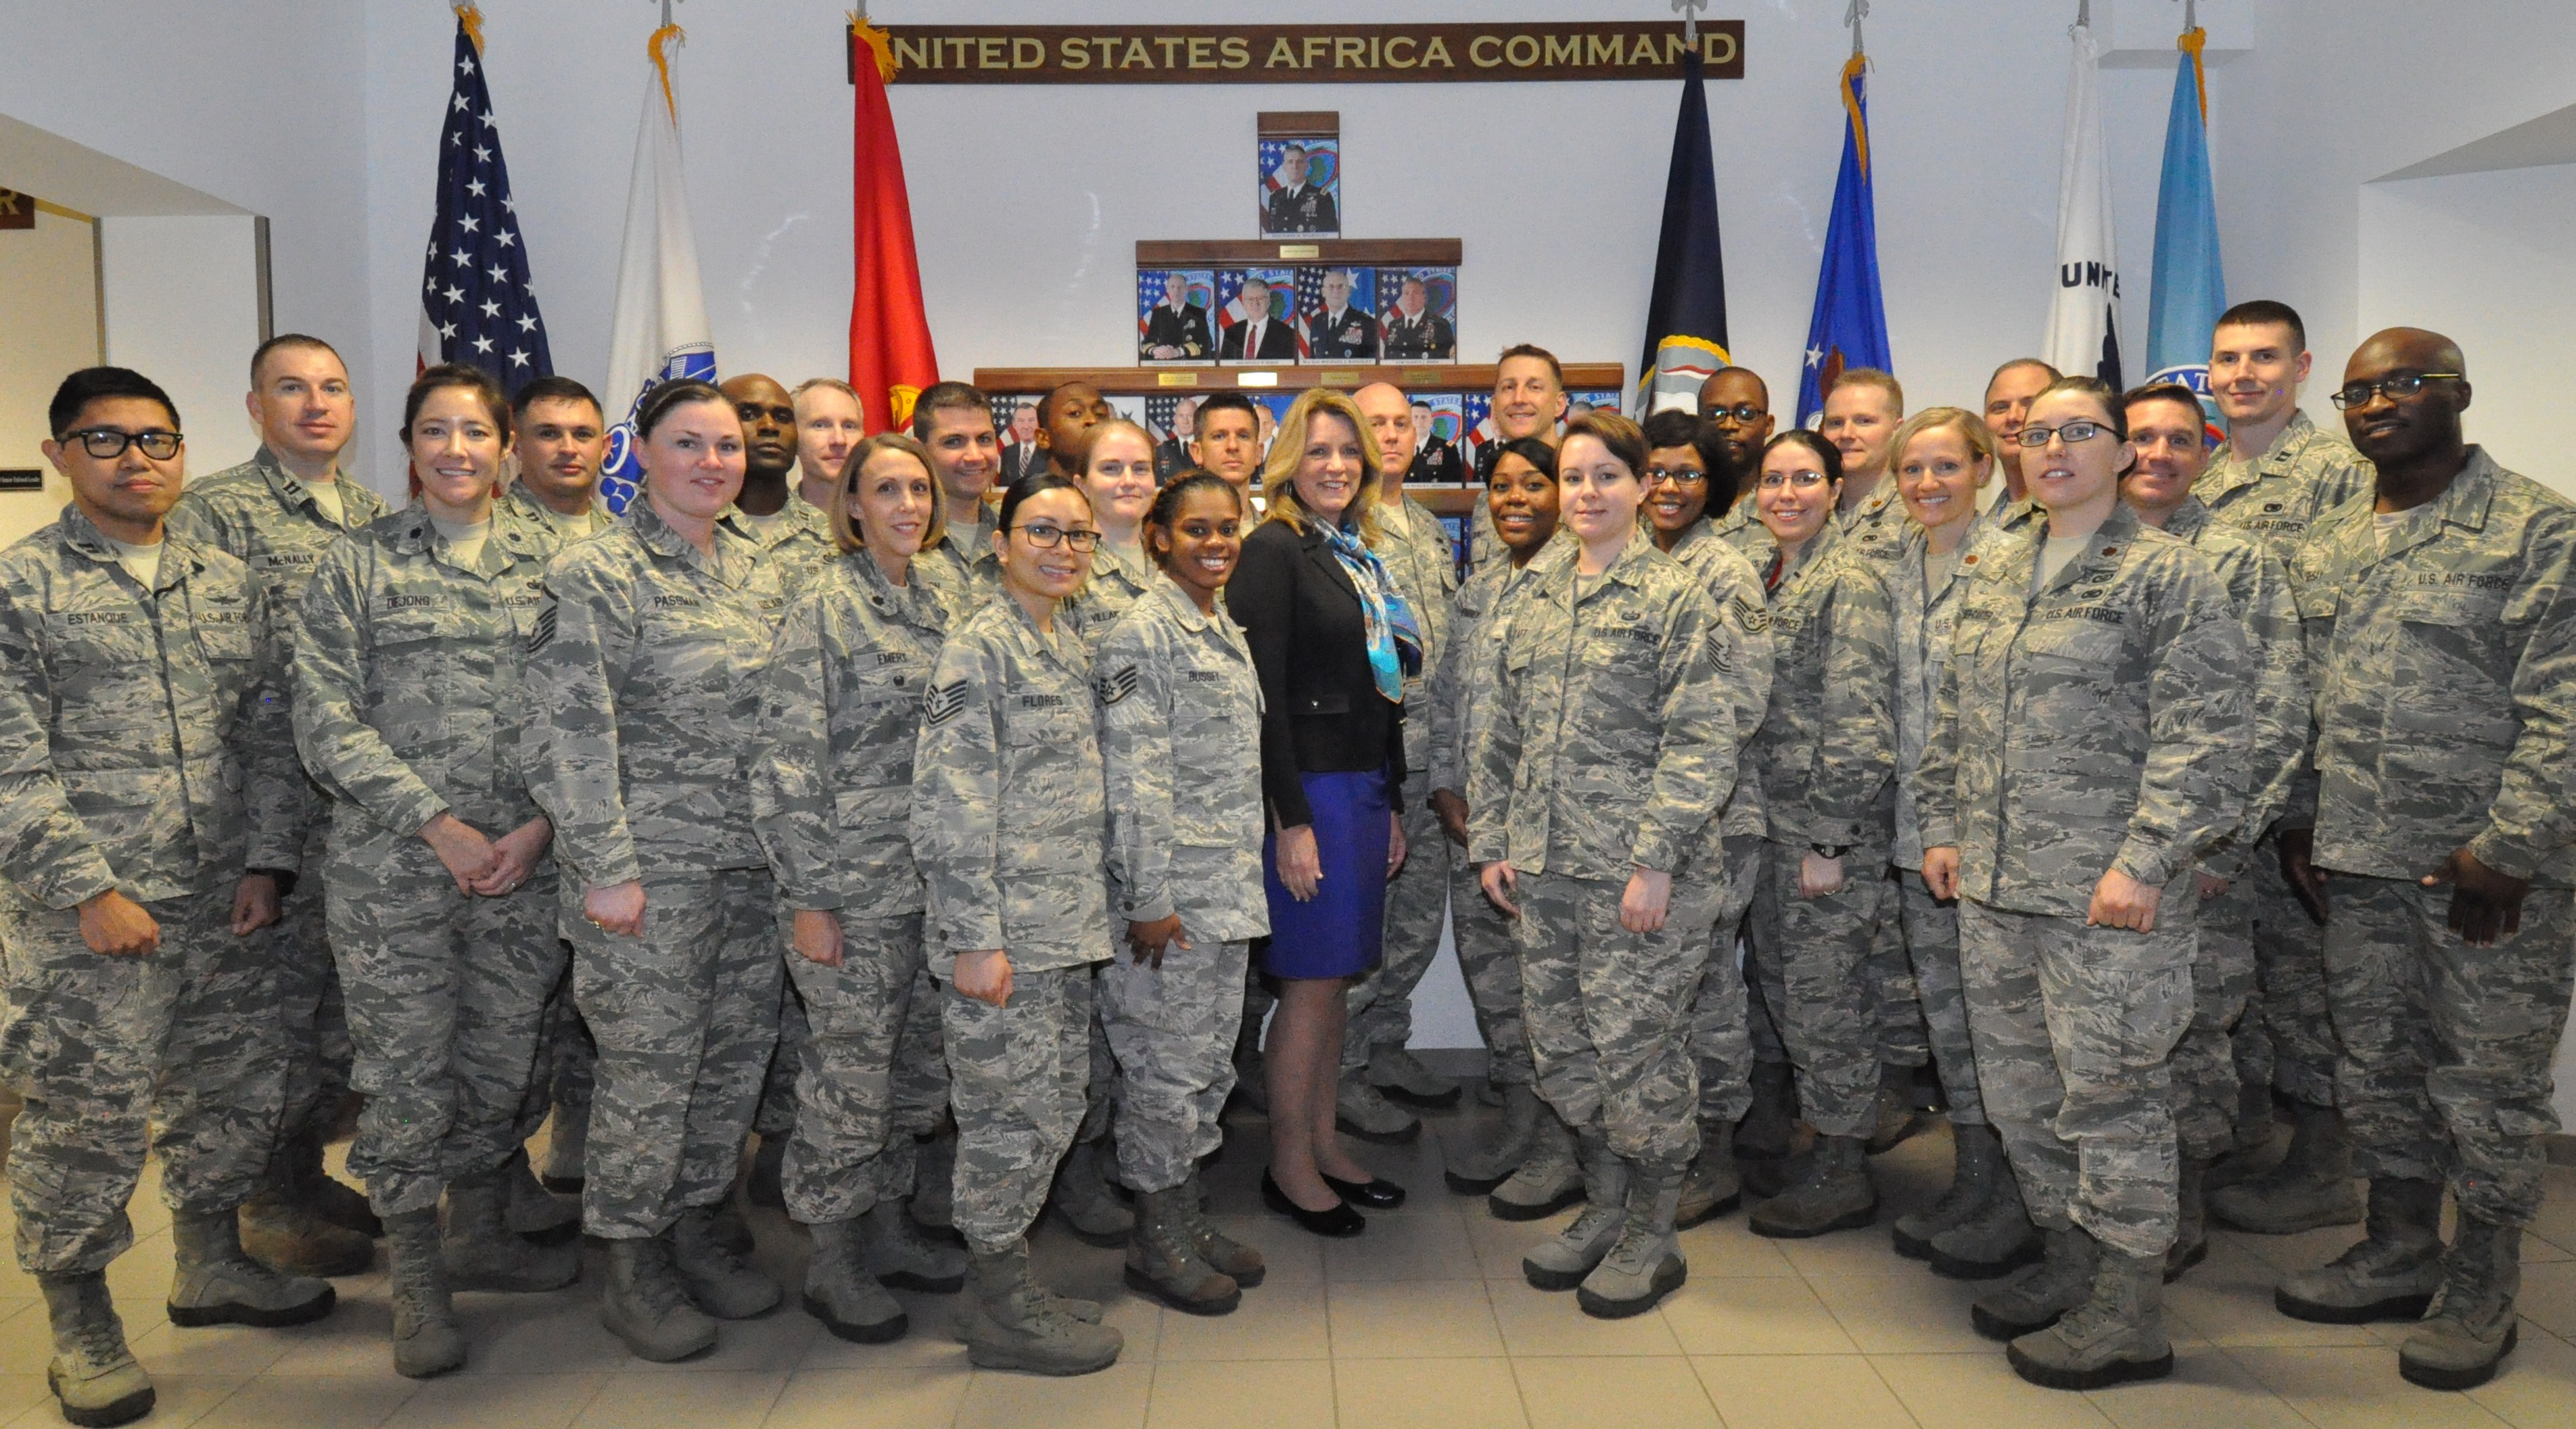 Secretary of the Air Force Deborah Lee James poses with select Airmen stationed in Stuttgart, Germany, Nov. 18, 2015. The Secretary's visit to U.S. Africa Command concluded with an Airmen's Call where she discussed her top priorities for the Air Force. (U.S. Africa Command photo by Brenda Law/RELEASED)